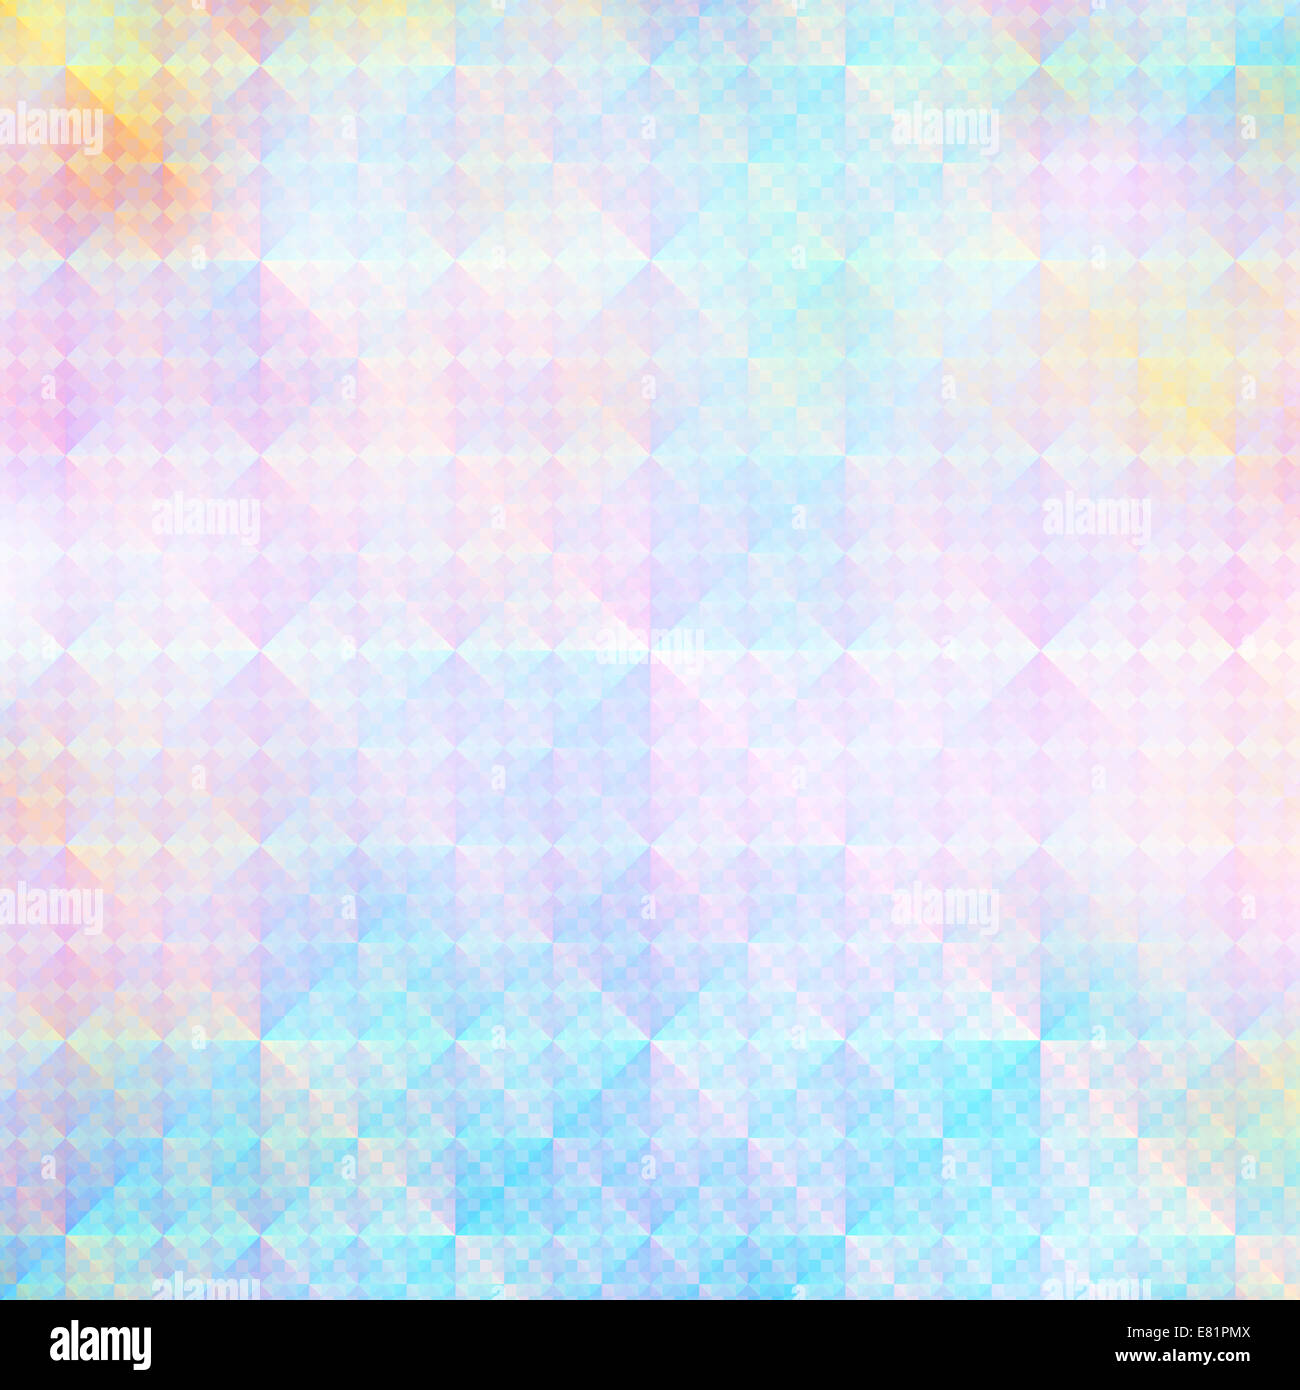 pastels texture abstract background - Stock Image